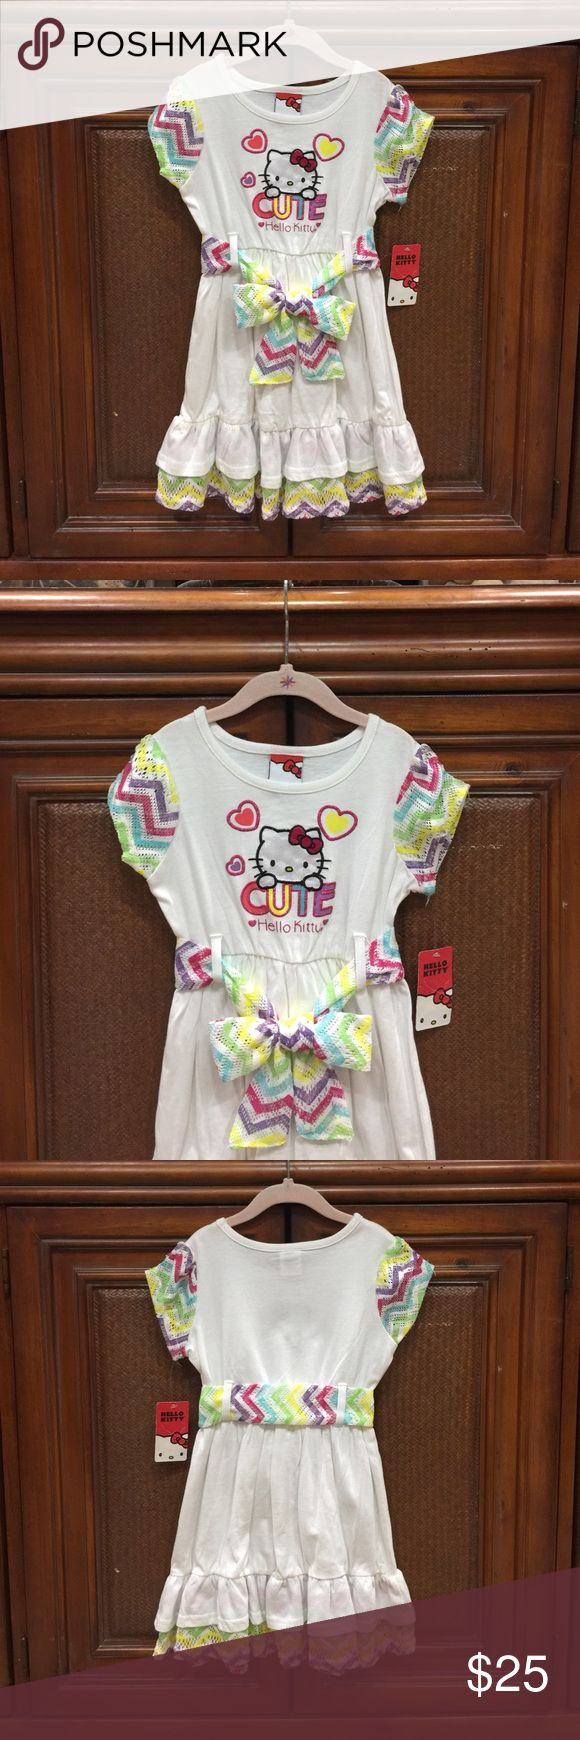 💕❤️💕 ( NWT ) GIRLS DRESS BY HELLO KITTY 💕❤️💕 💕❤️💕 ( NWT ) BRAND NEW WITH TAGS 💕 SPECIAL LITTLE GIRLS DRESS 💕 BY HELLO KITTY 💕❤️💕 HELLO KITTY Dresses Formal